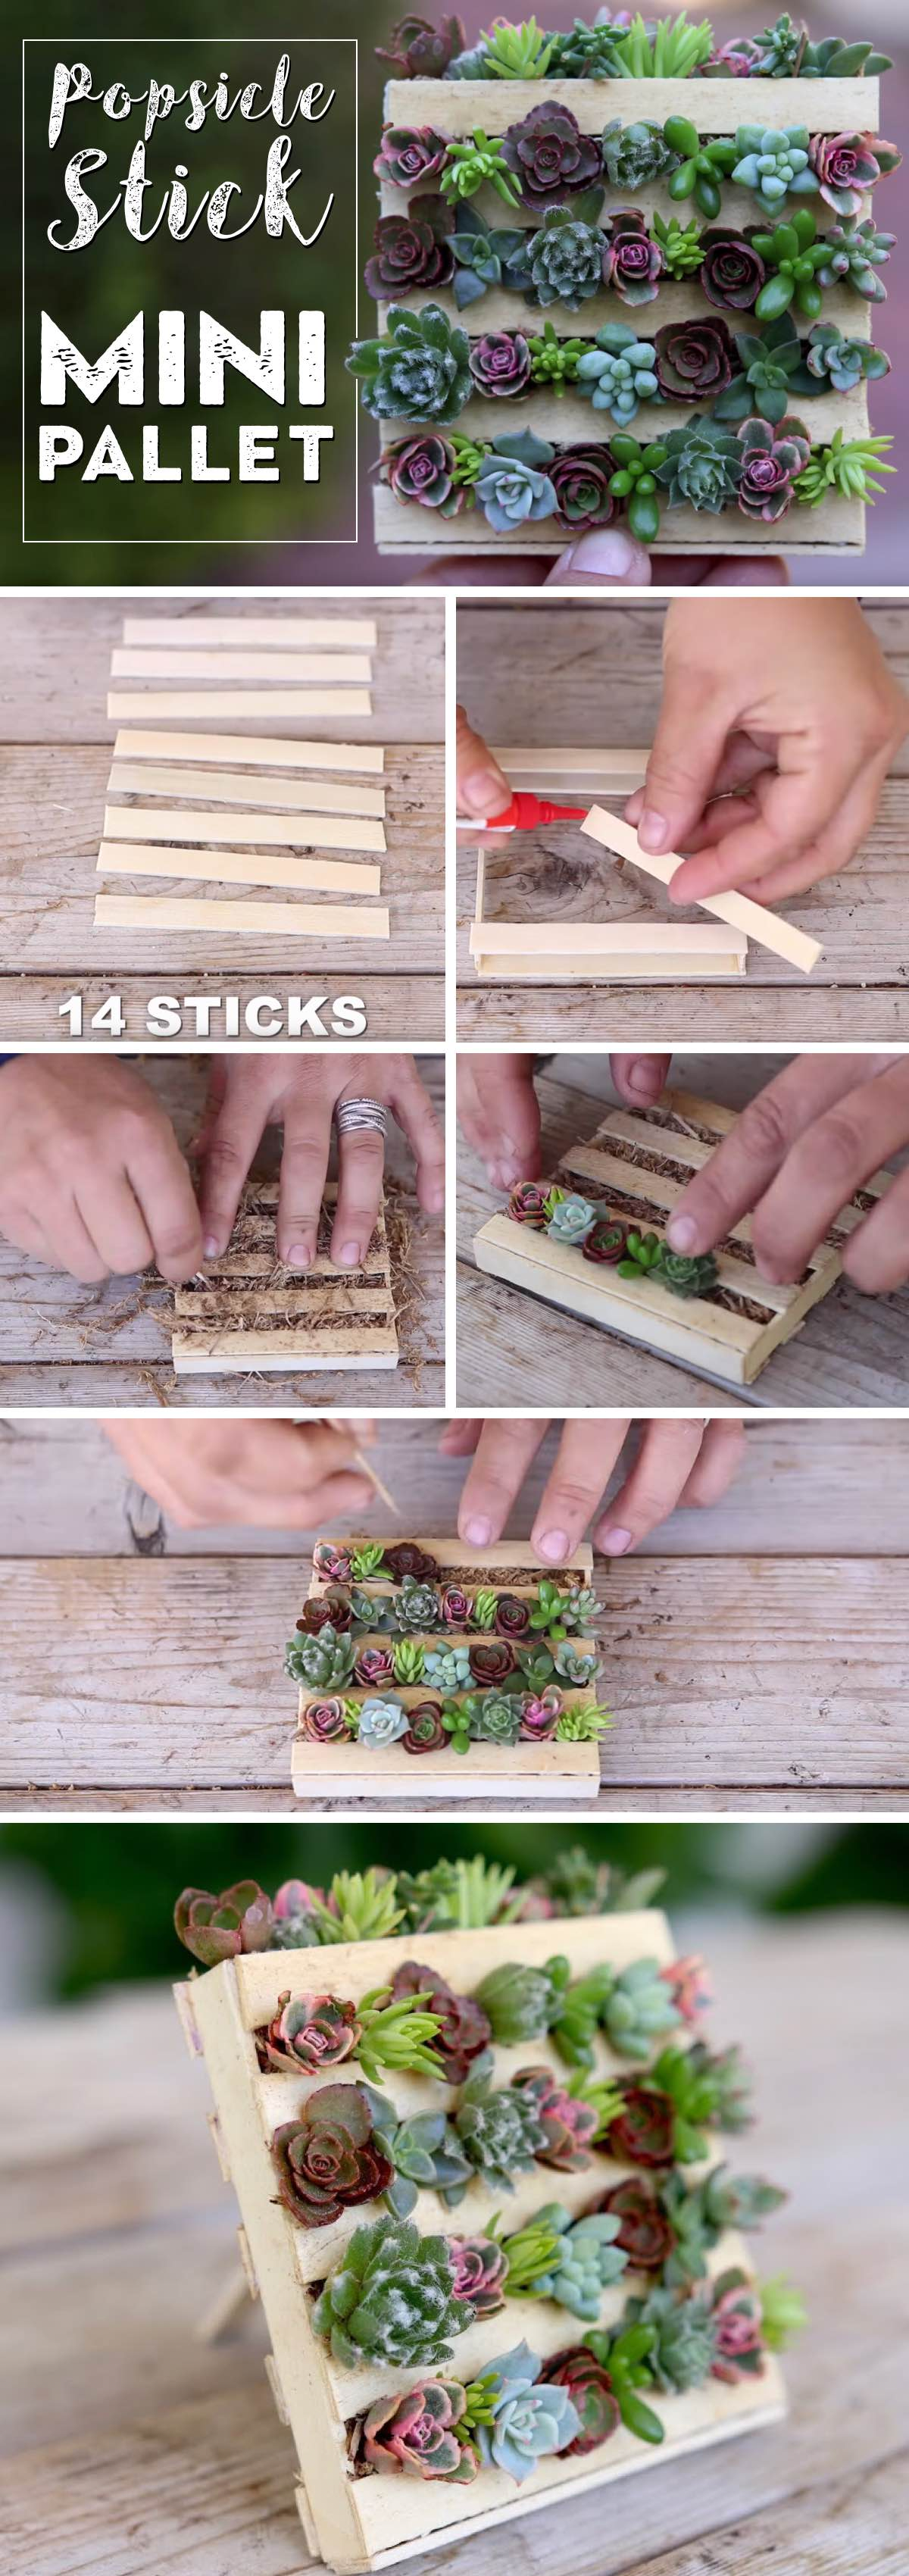 These Mini Pallet Planters For Succulents Are A Popsicle Sticks Wonder